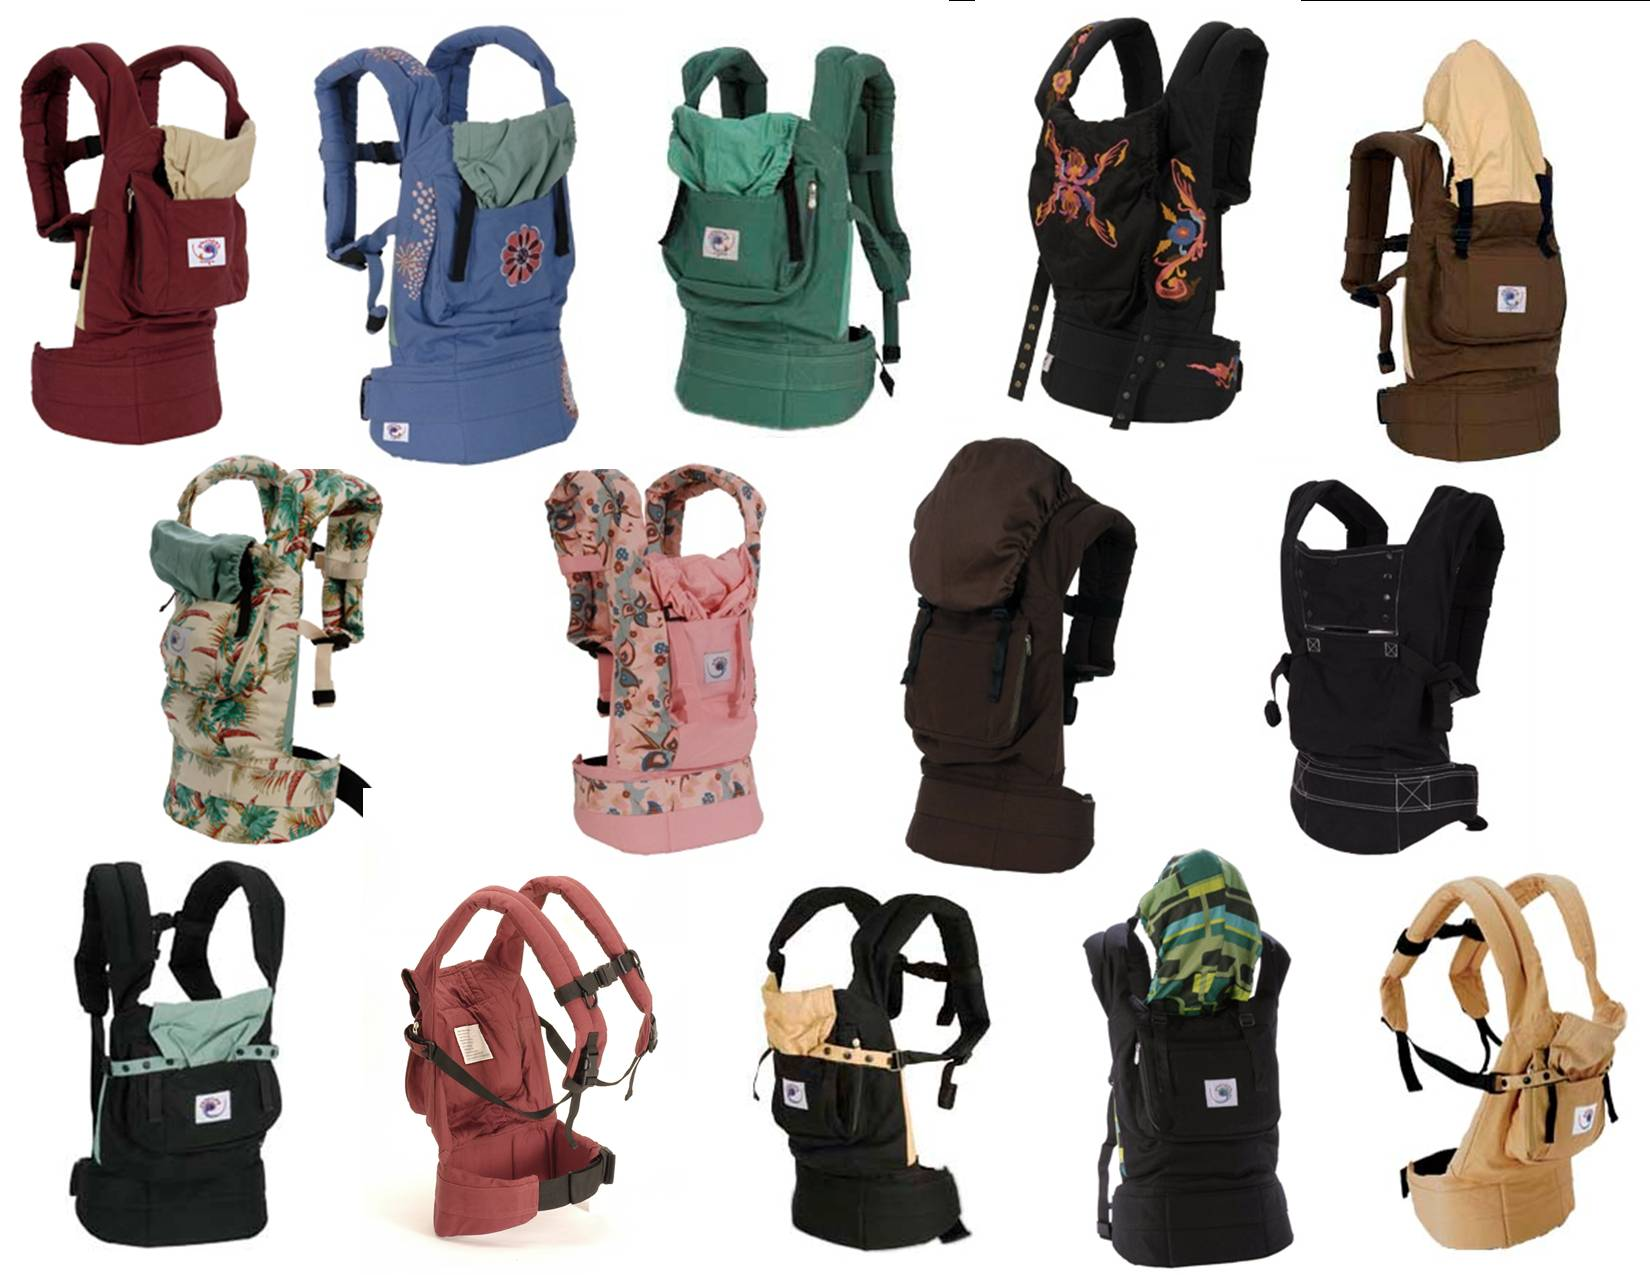 33ebab55d3b How to Choose the Best Baby Carrier - BabyCarriersReviews.com